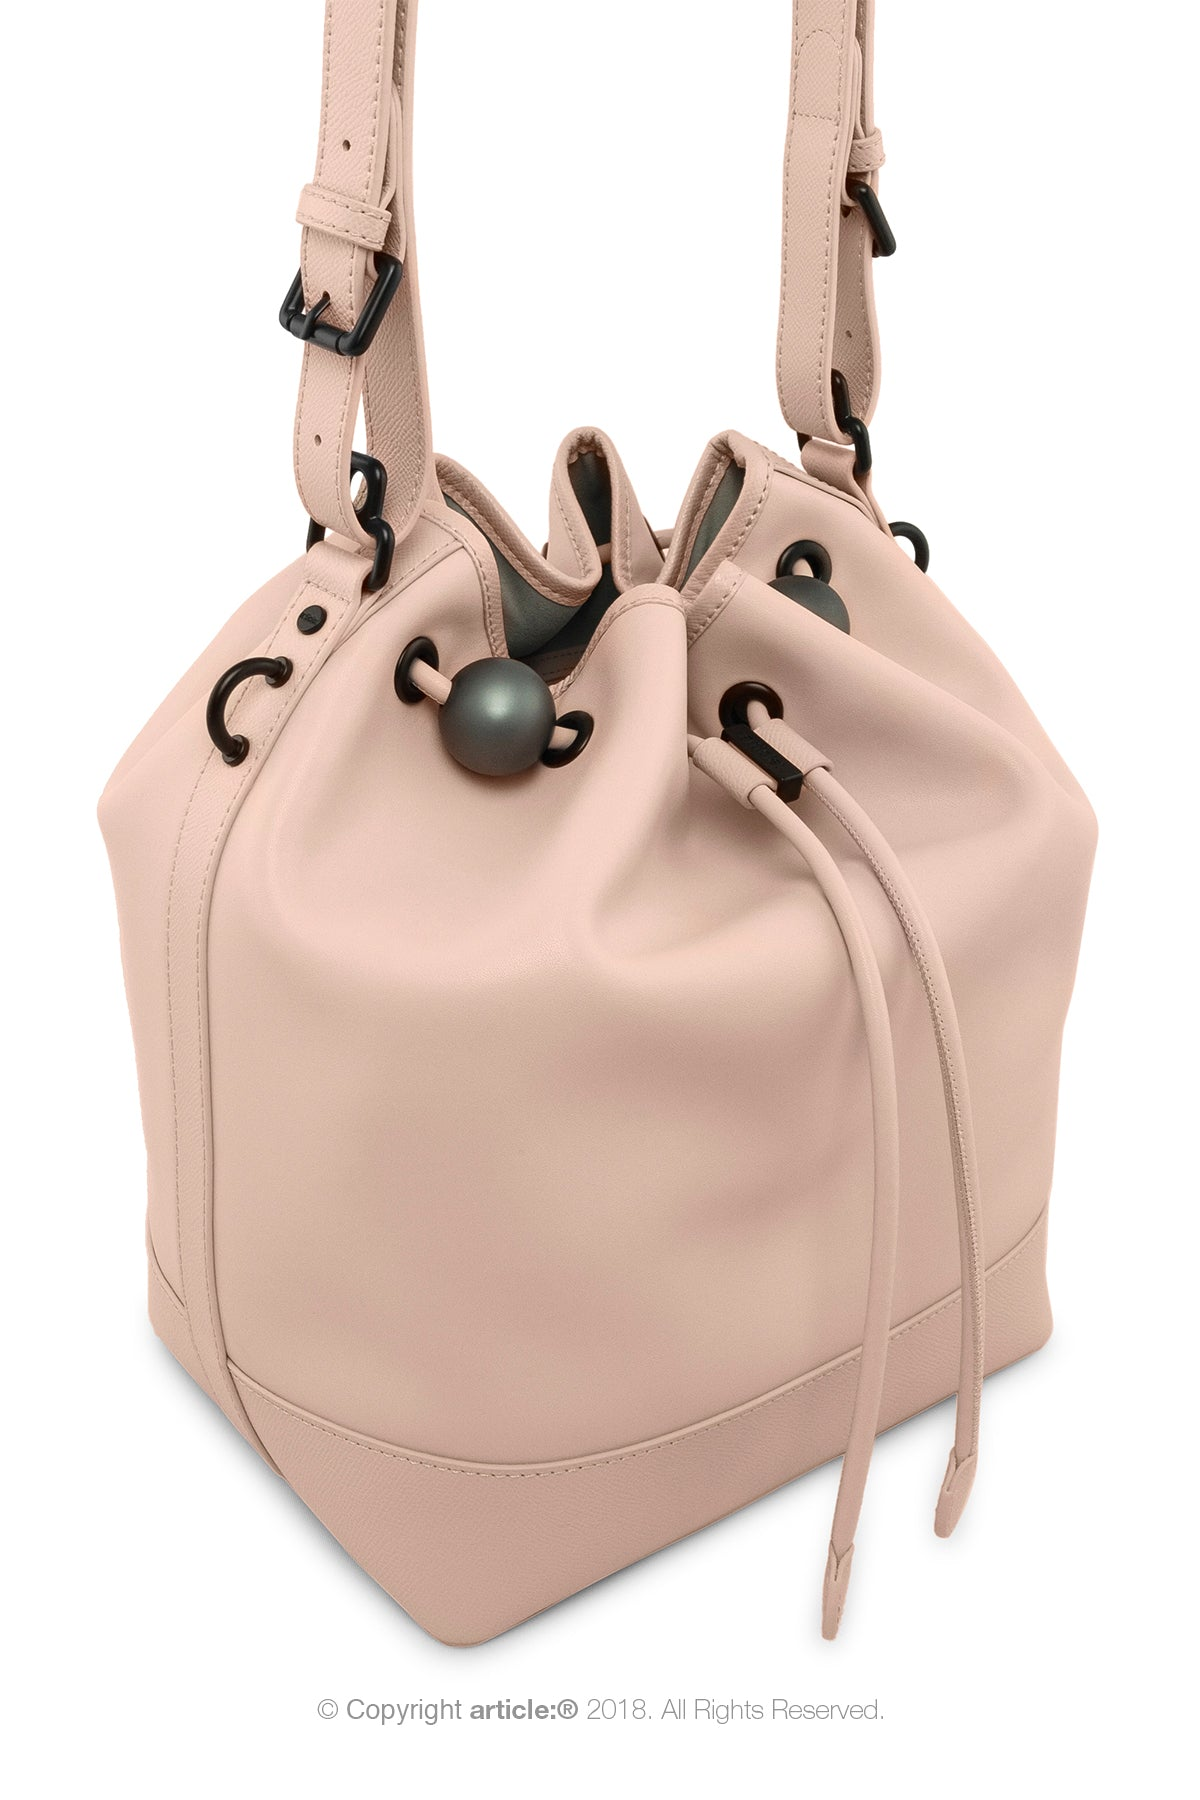 article: #120 Handbag Grande Bucket - Ballet